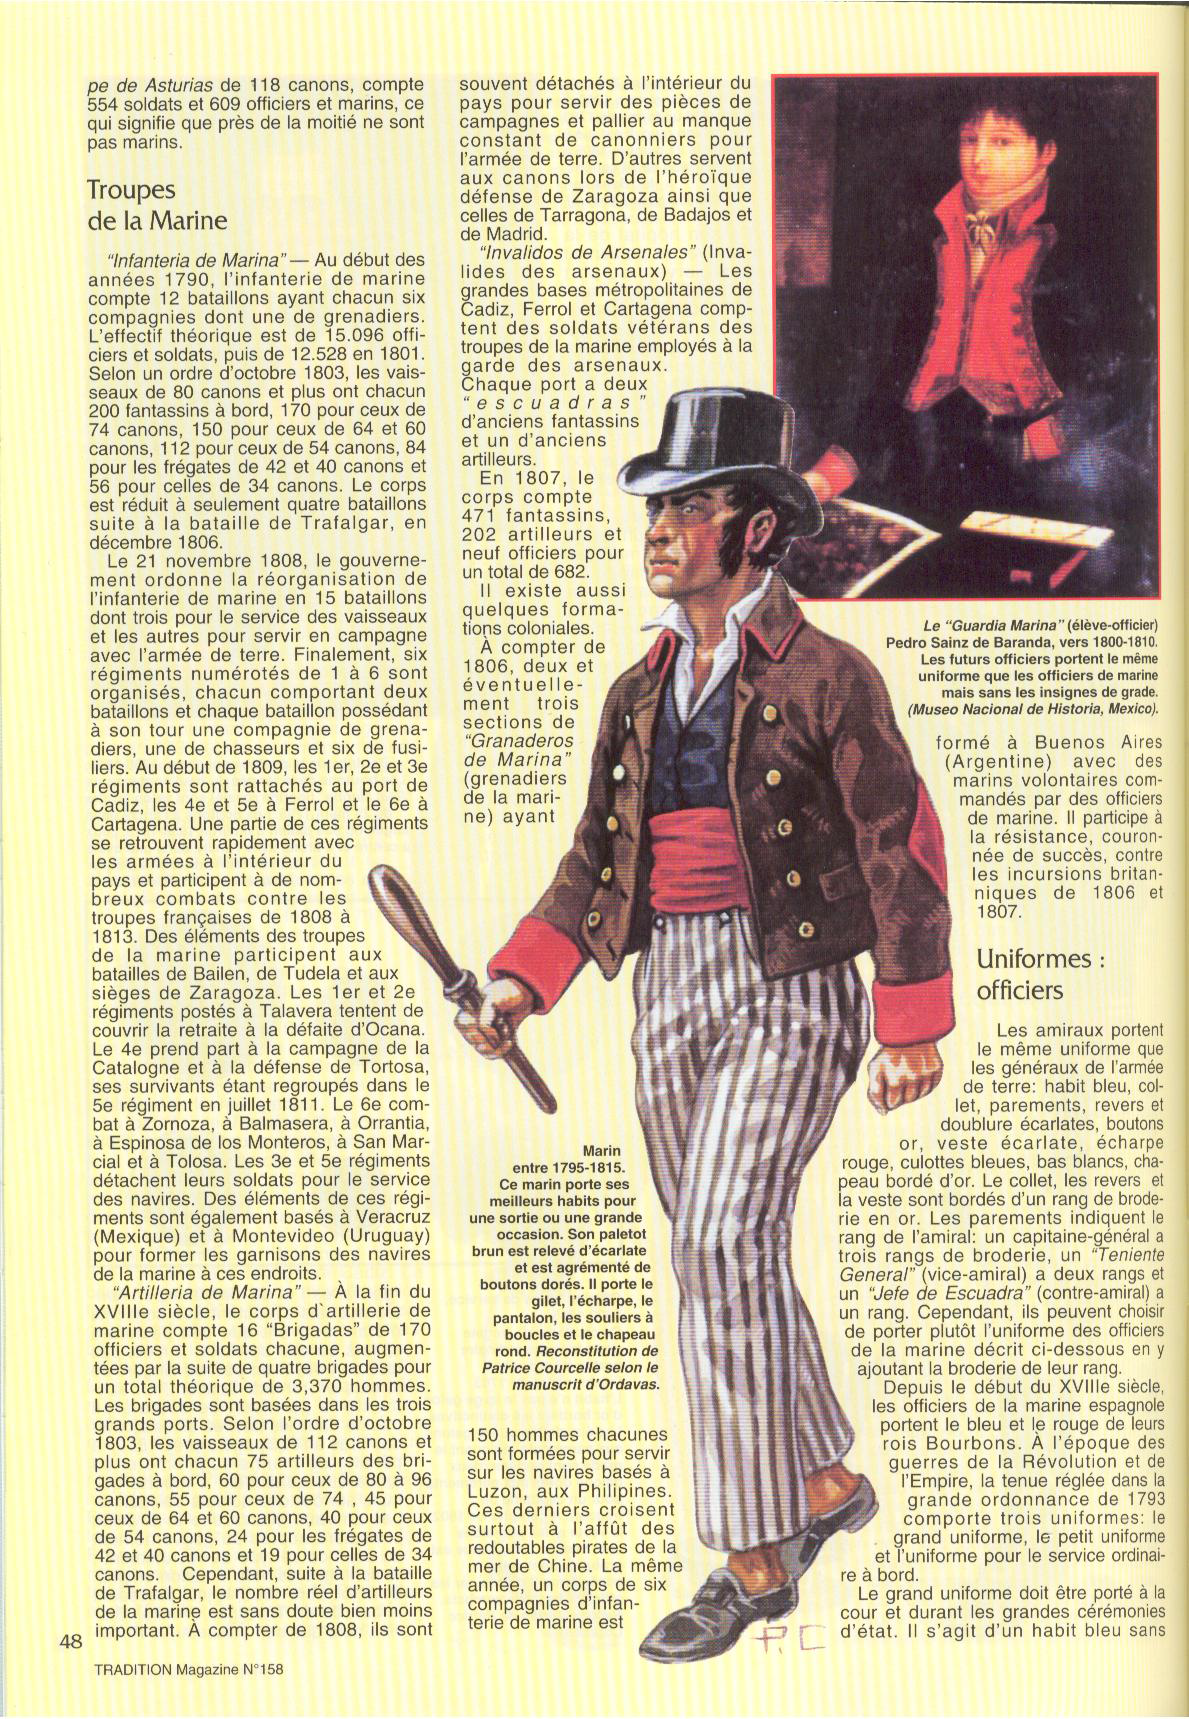 Tradition 158 Page 48 Navy Uniforms Napoleonic Wars Sailor